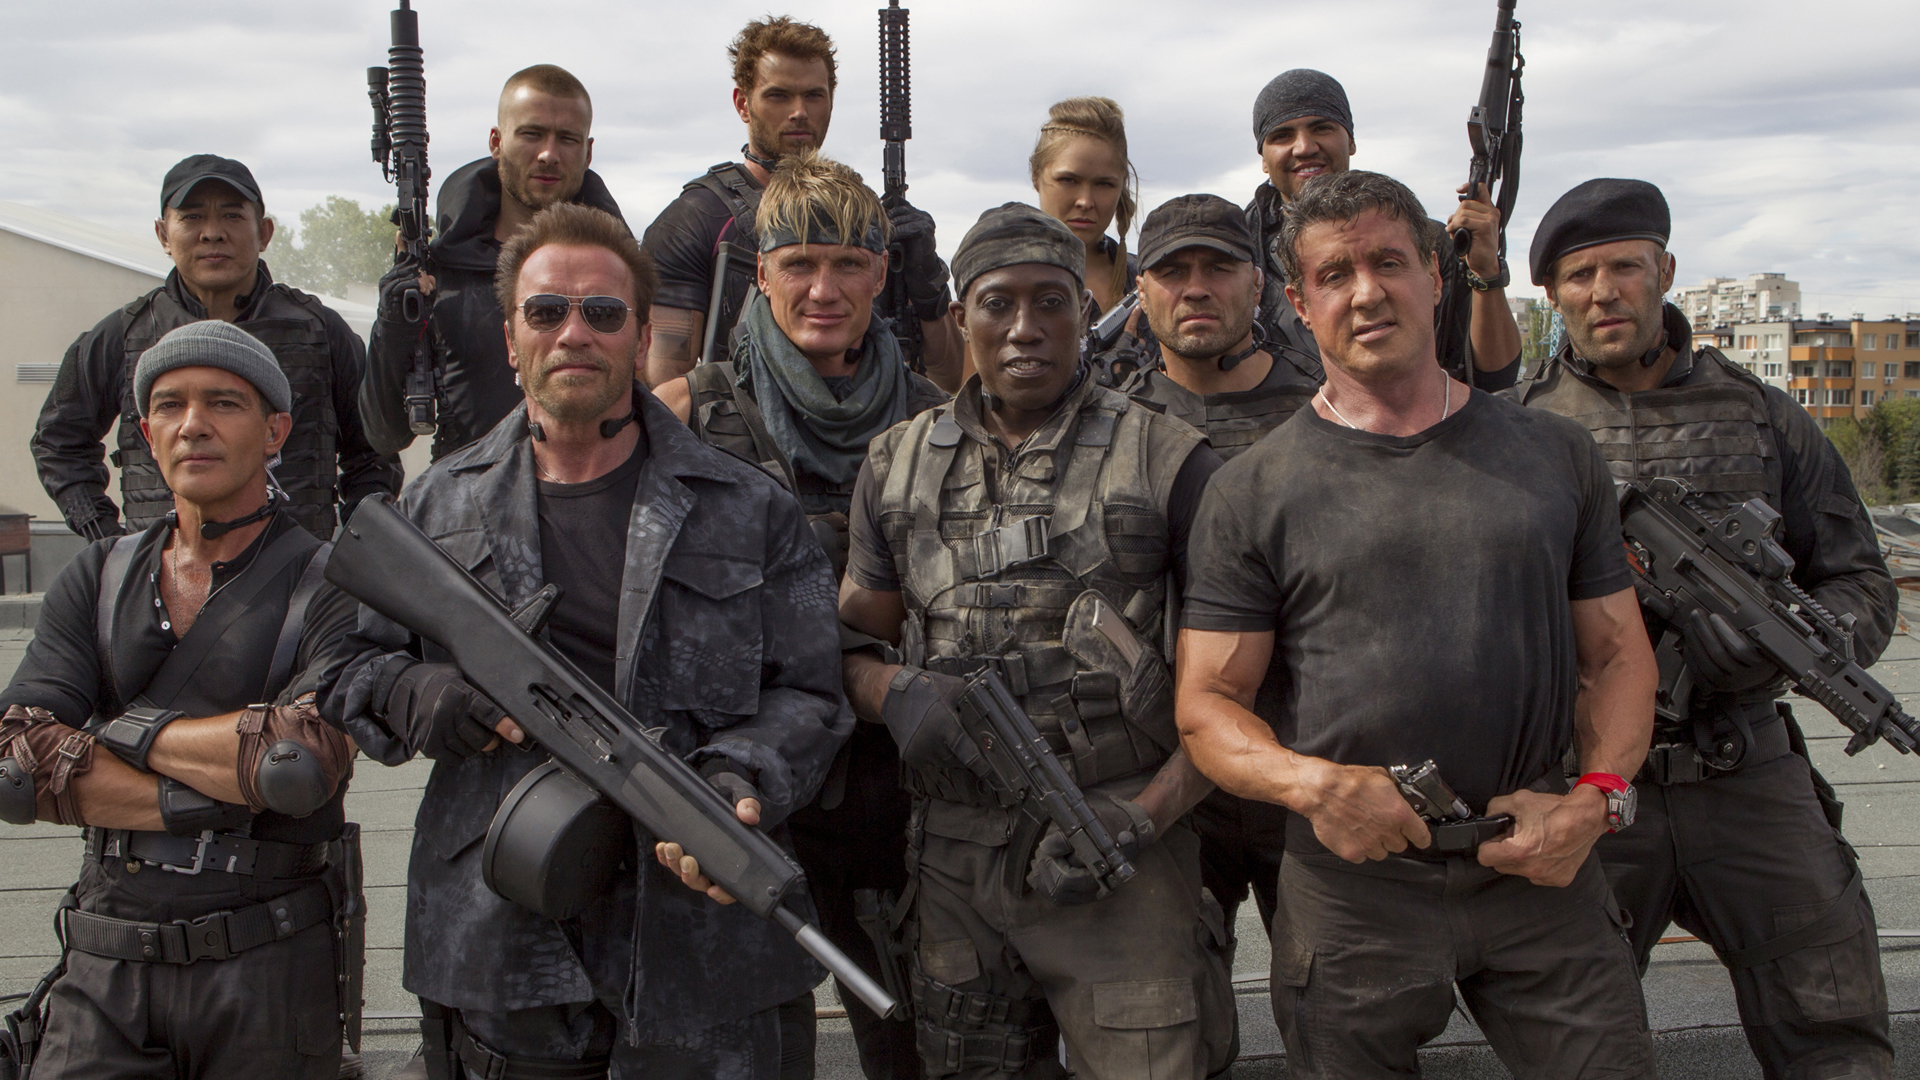 http://2.bp.blogspot.com/-4bpcO1g9mPE/U67PGSIm2EI/AAAAAAAAL9c/fIbU_RNY0jk/s2560/the-expendables-3-1920x1080-movie.jpg